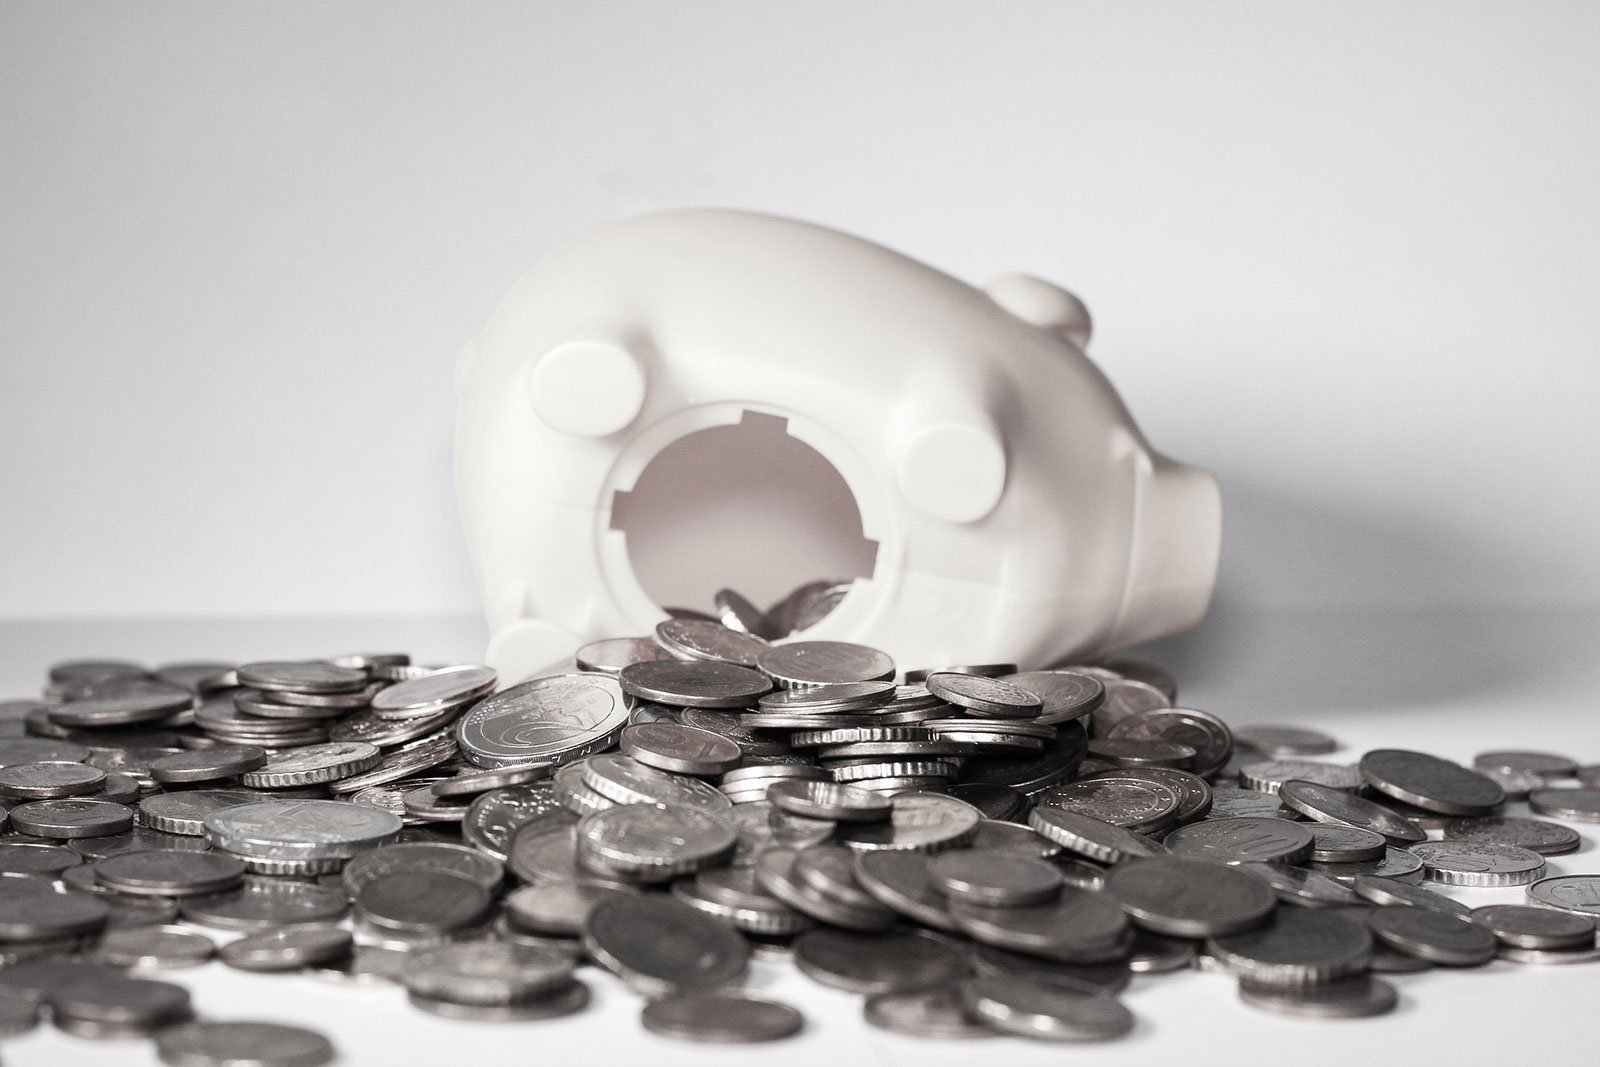 Coins scattered around white piggy bank that has fallen over